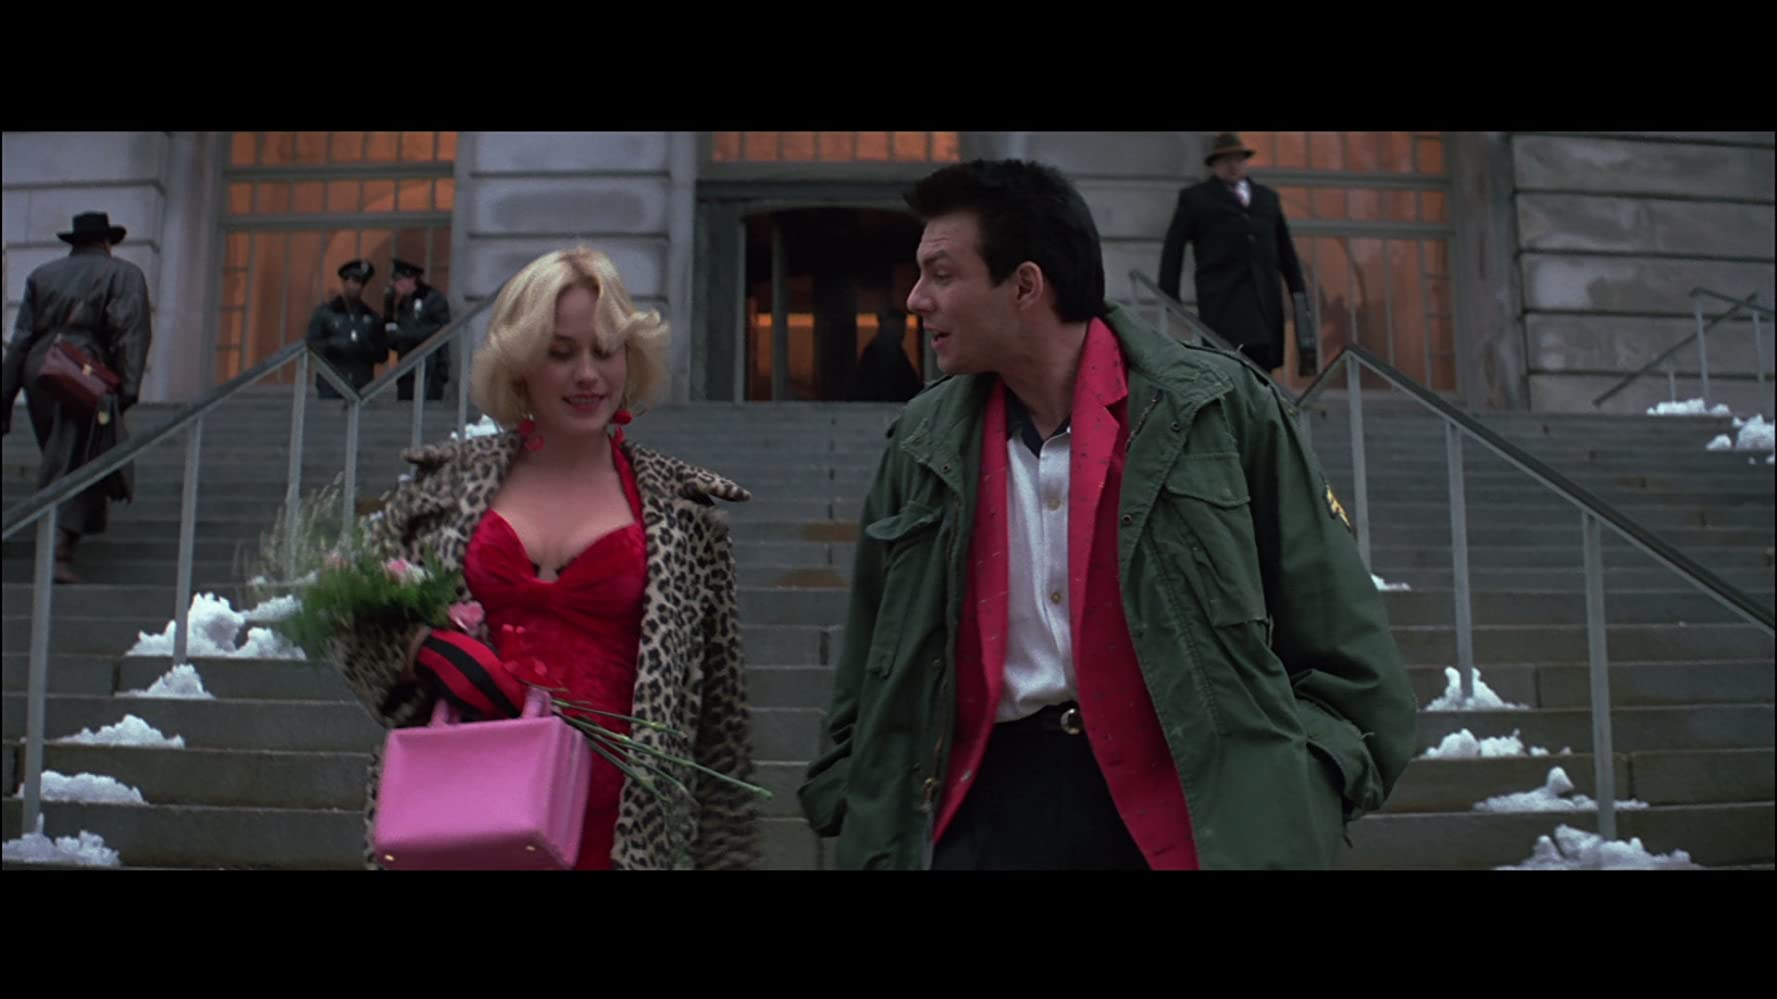 Image result for true romance christian slater patricia arquette